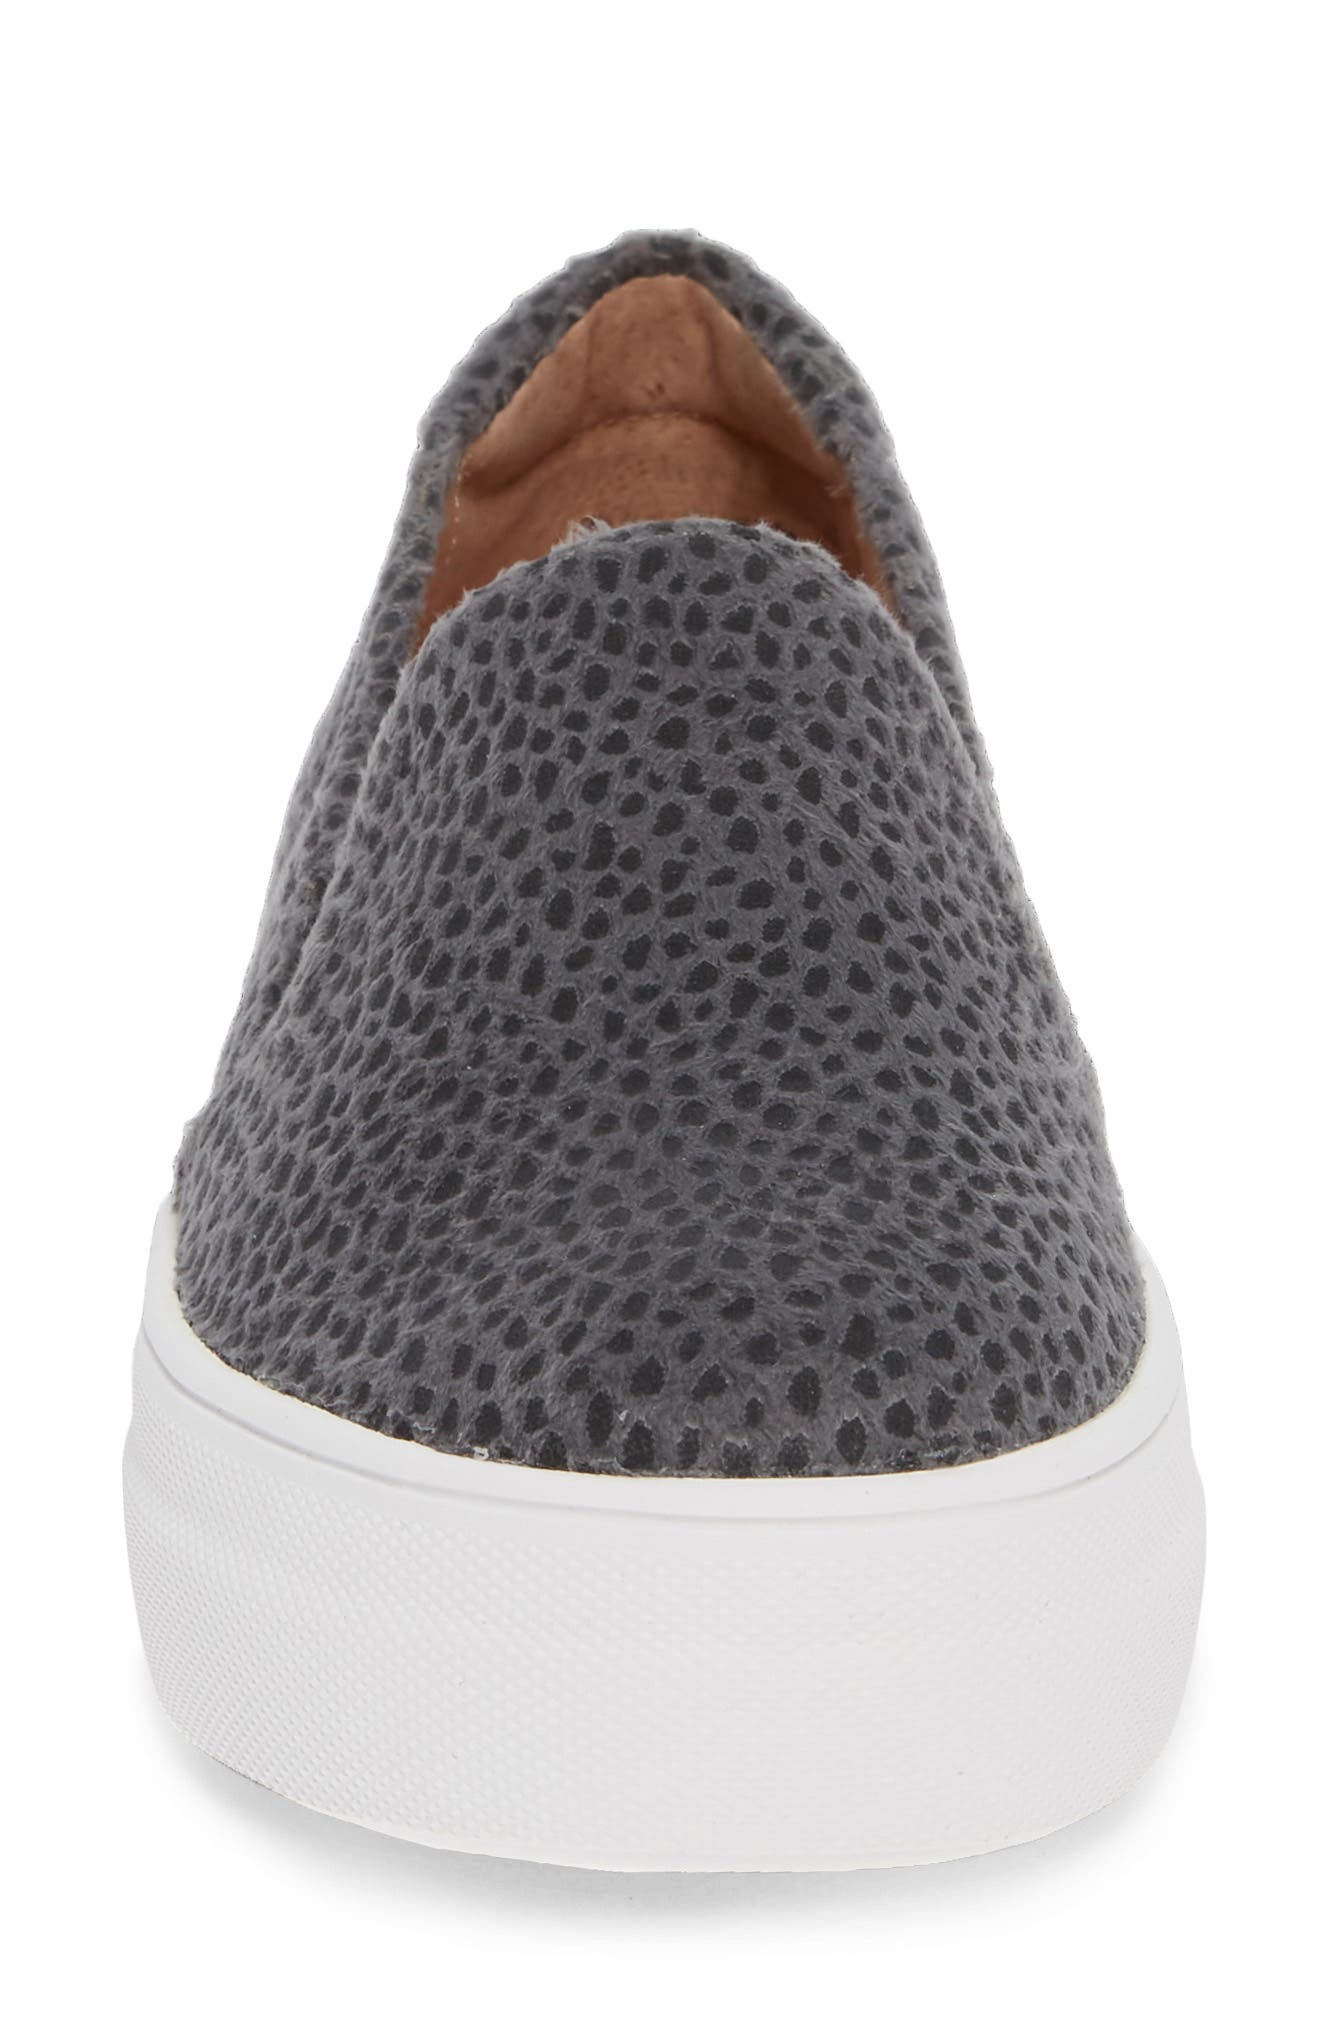 Alden Slip-On Sneaker,                             Alternate thumbnail 4, color,                             STONE CHEETAH FABRIC